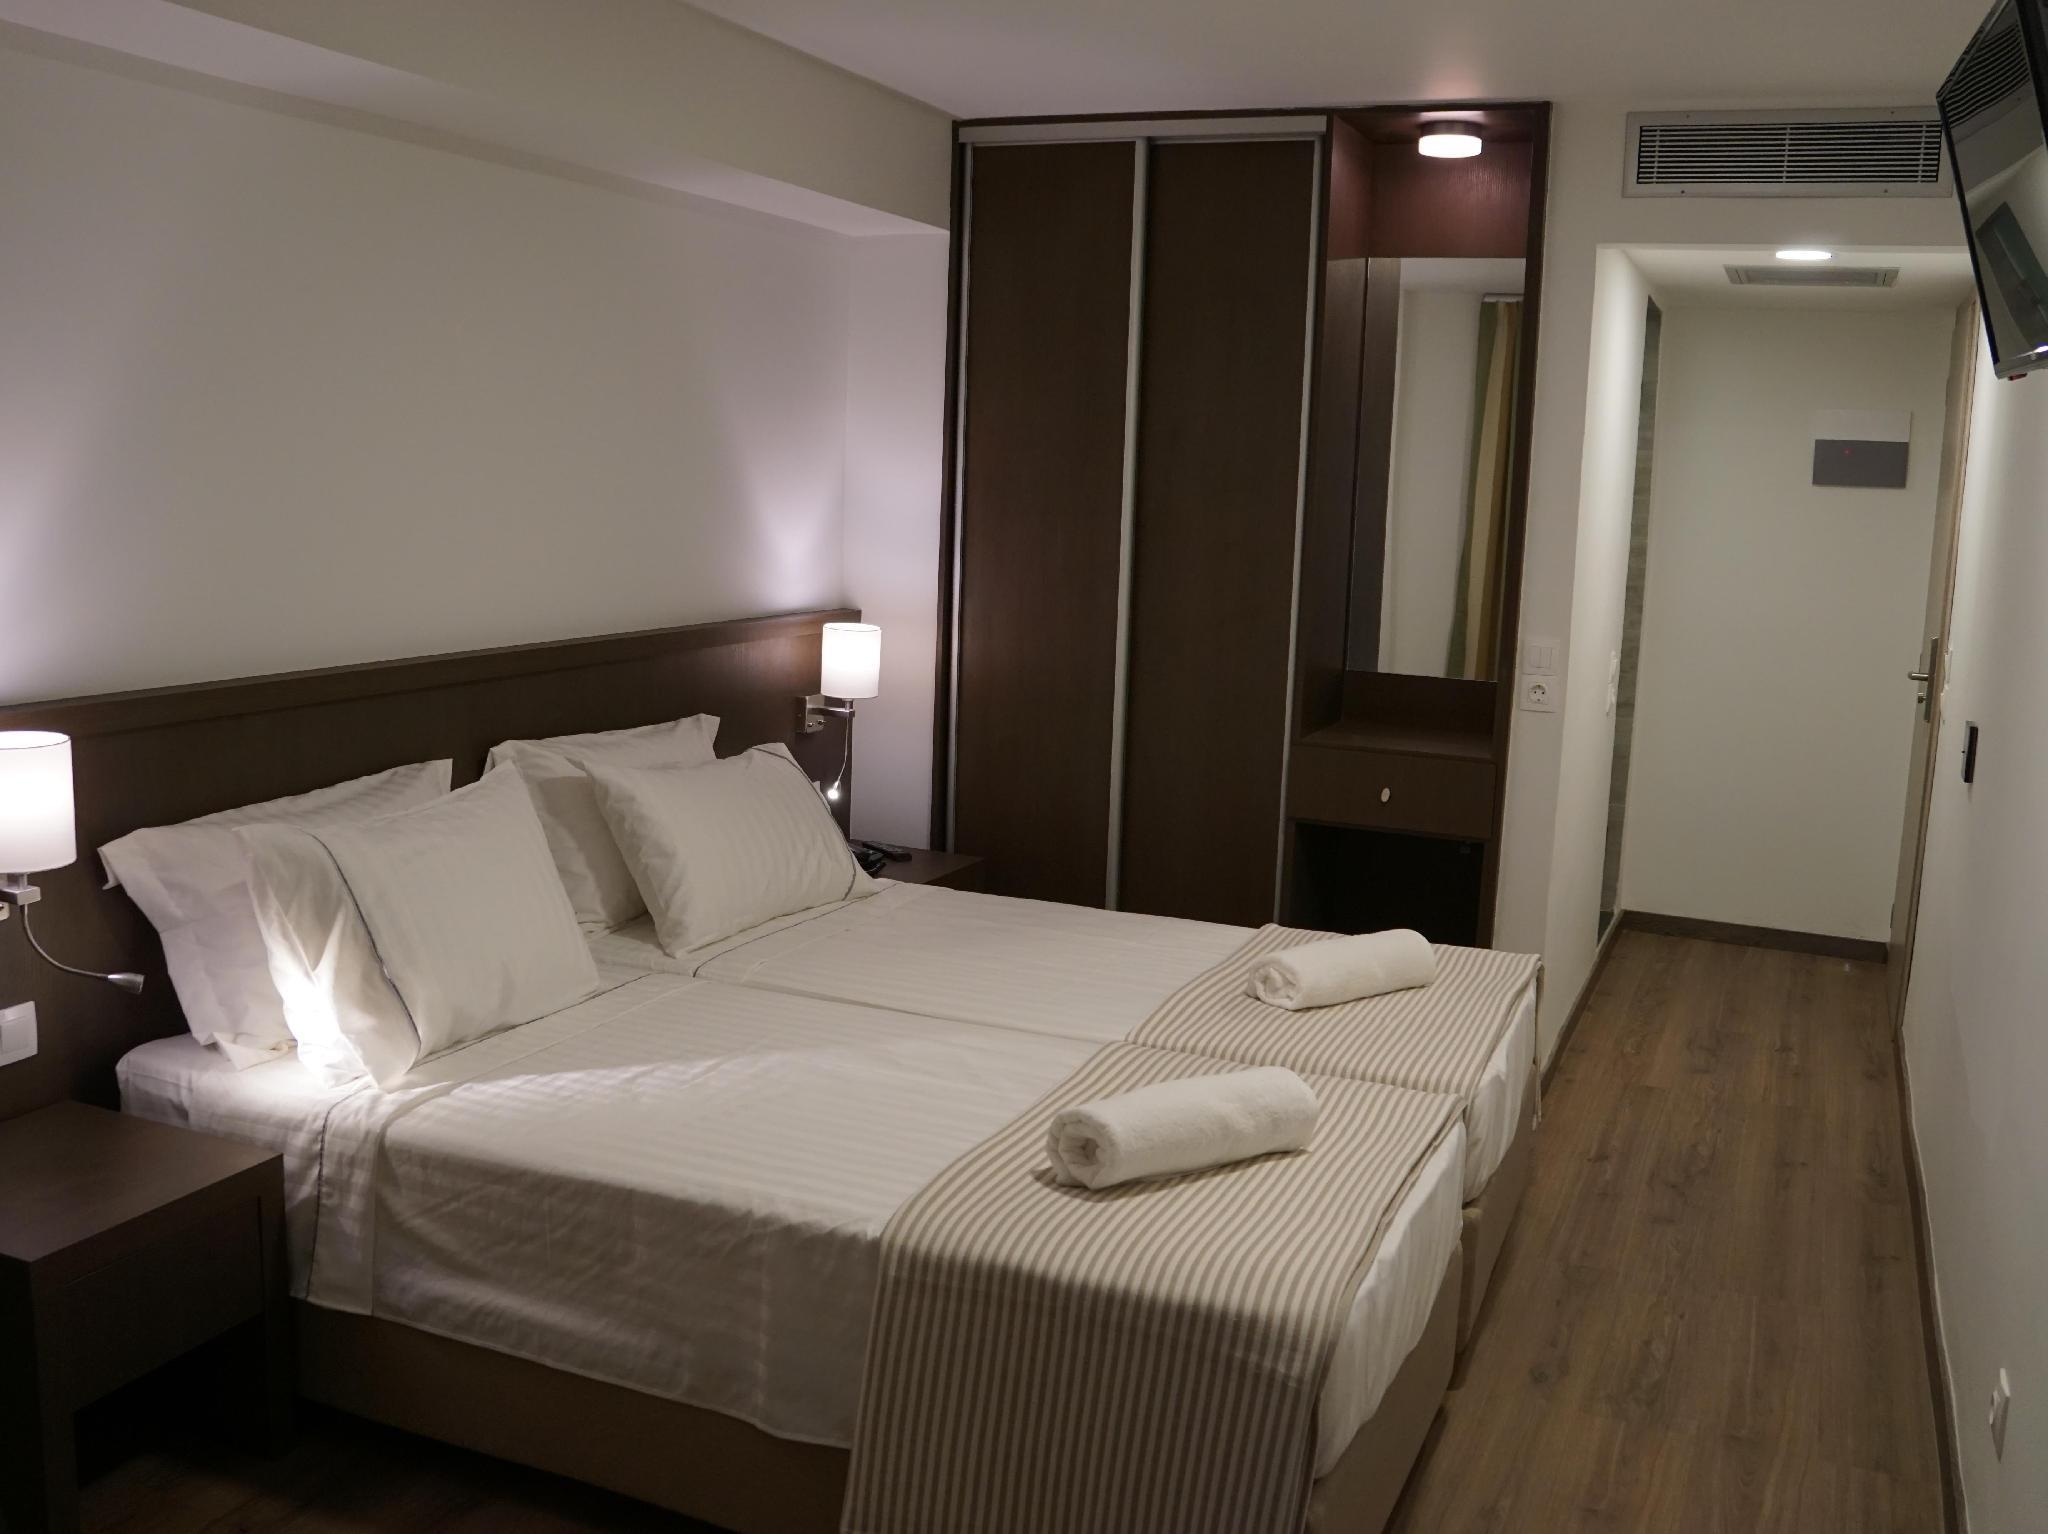 Habitacio Doble o 2 llits amb llit supletori (Double or Twin Room with Extra Bed)